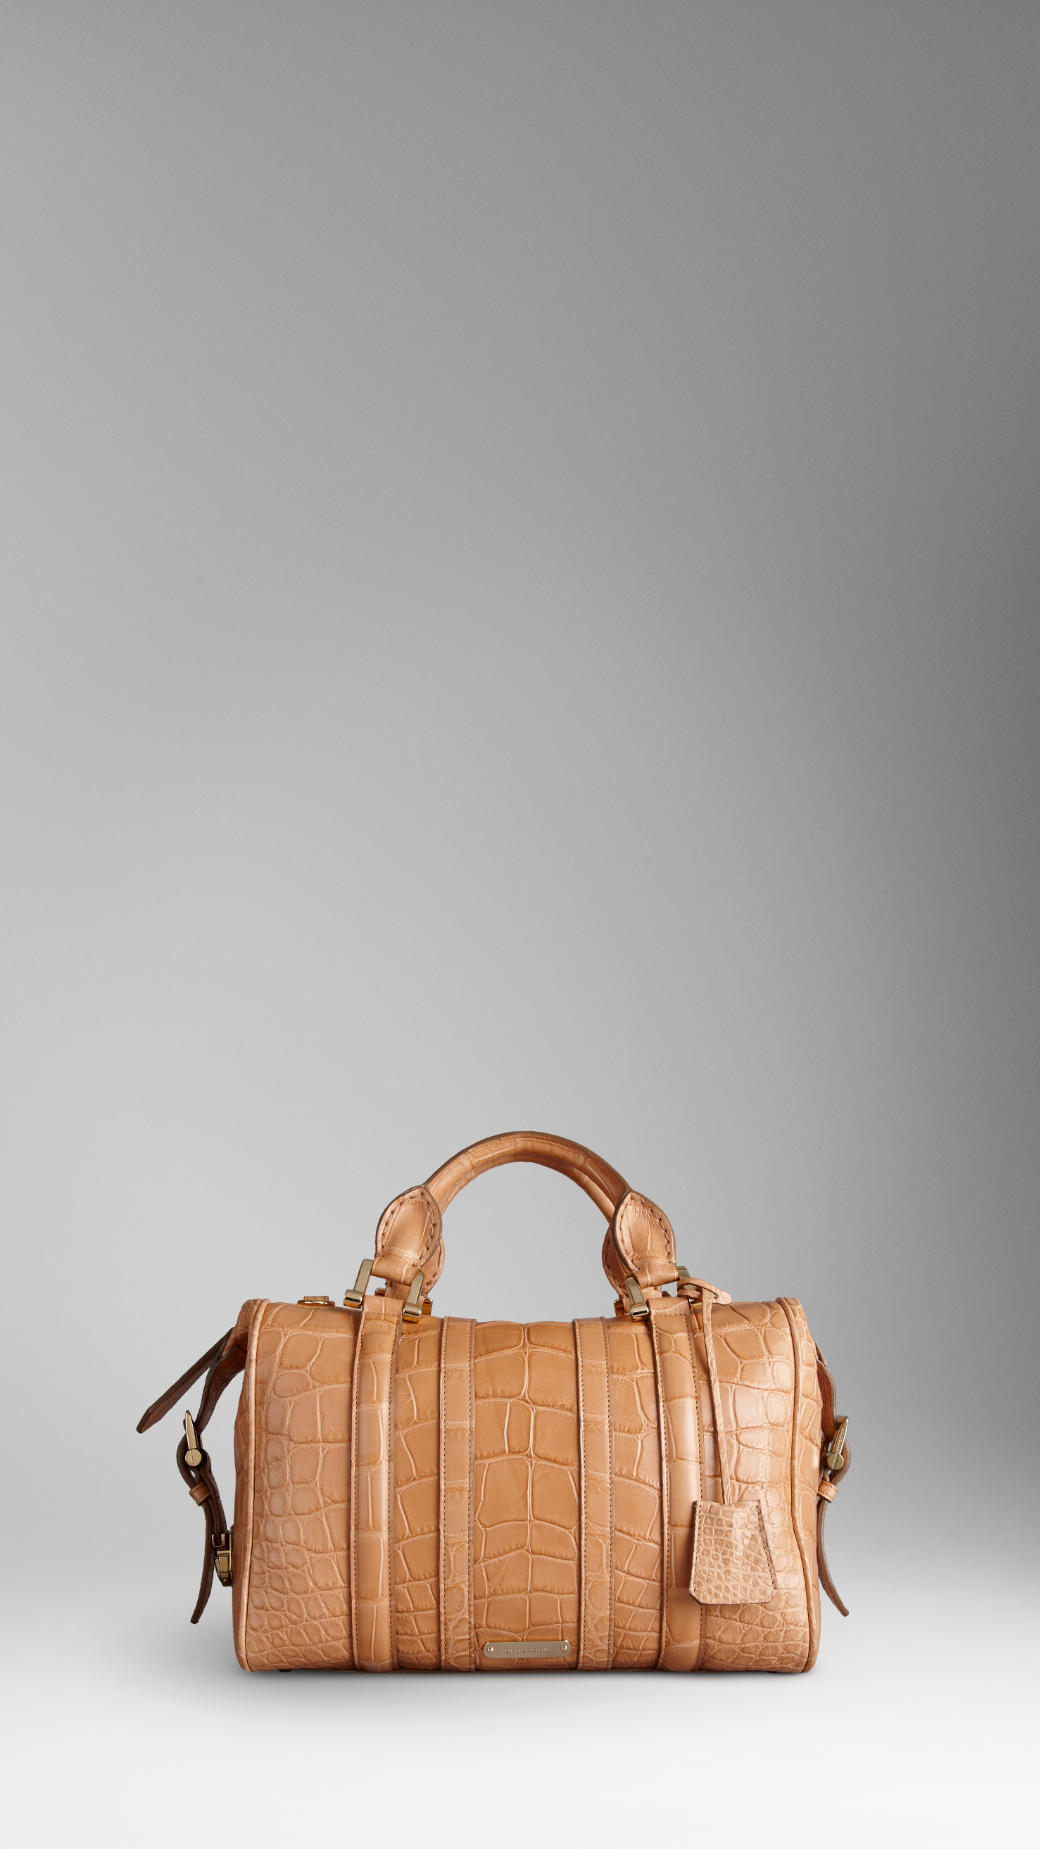 36922bd7456a Lyst - Burberry Medium Alligator Leather Bowling Bag in Brown